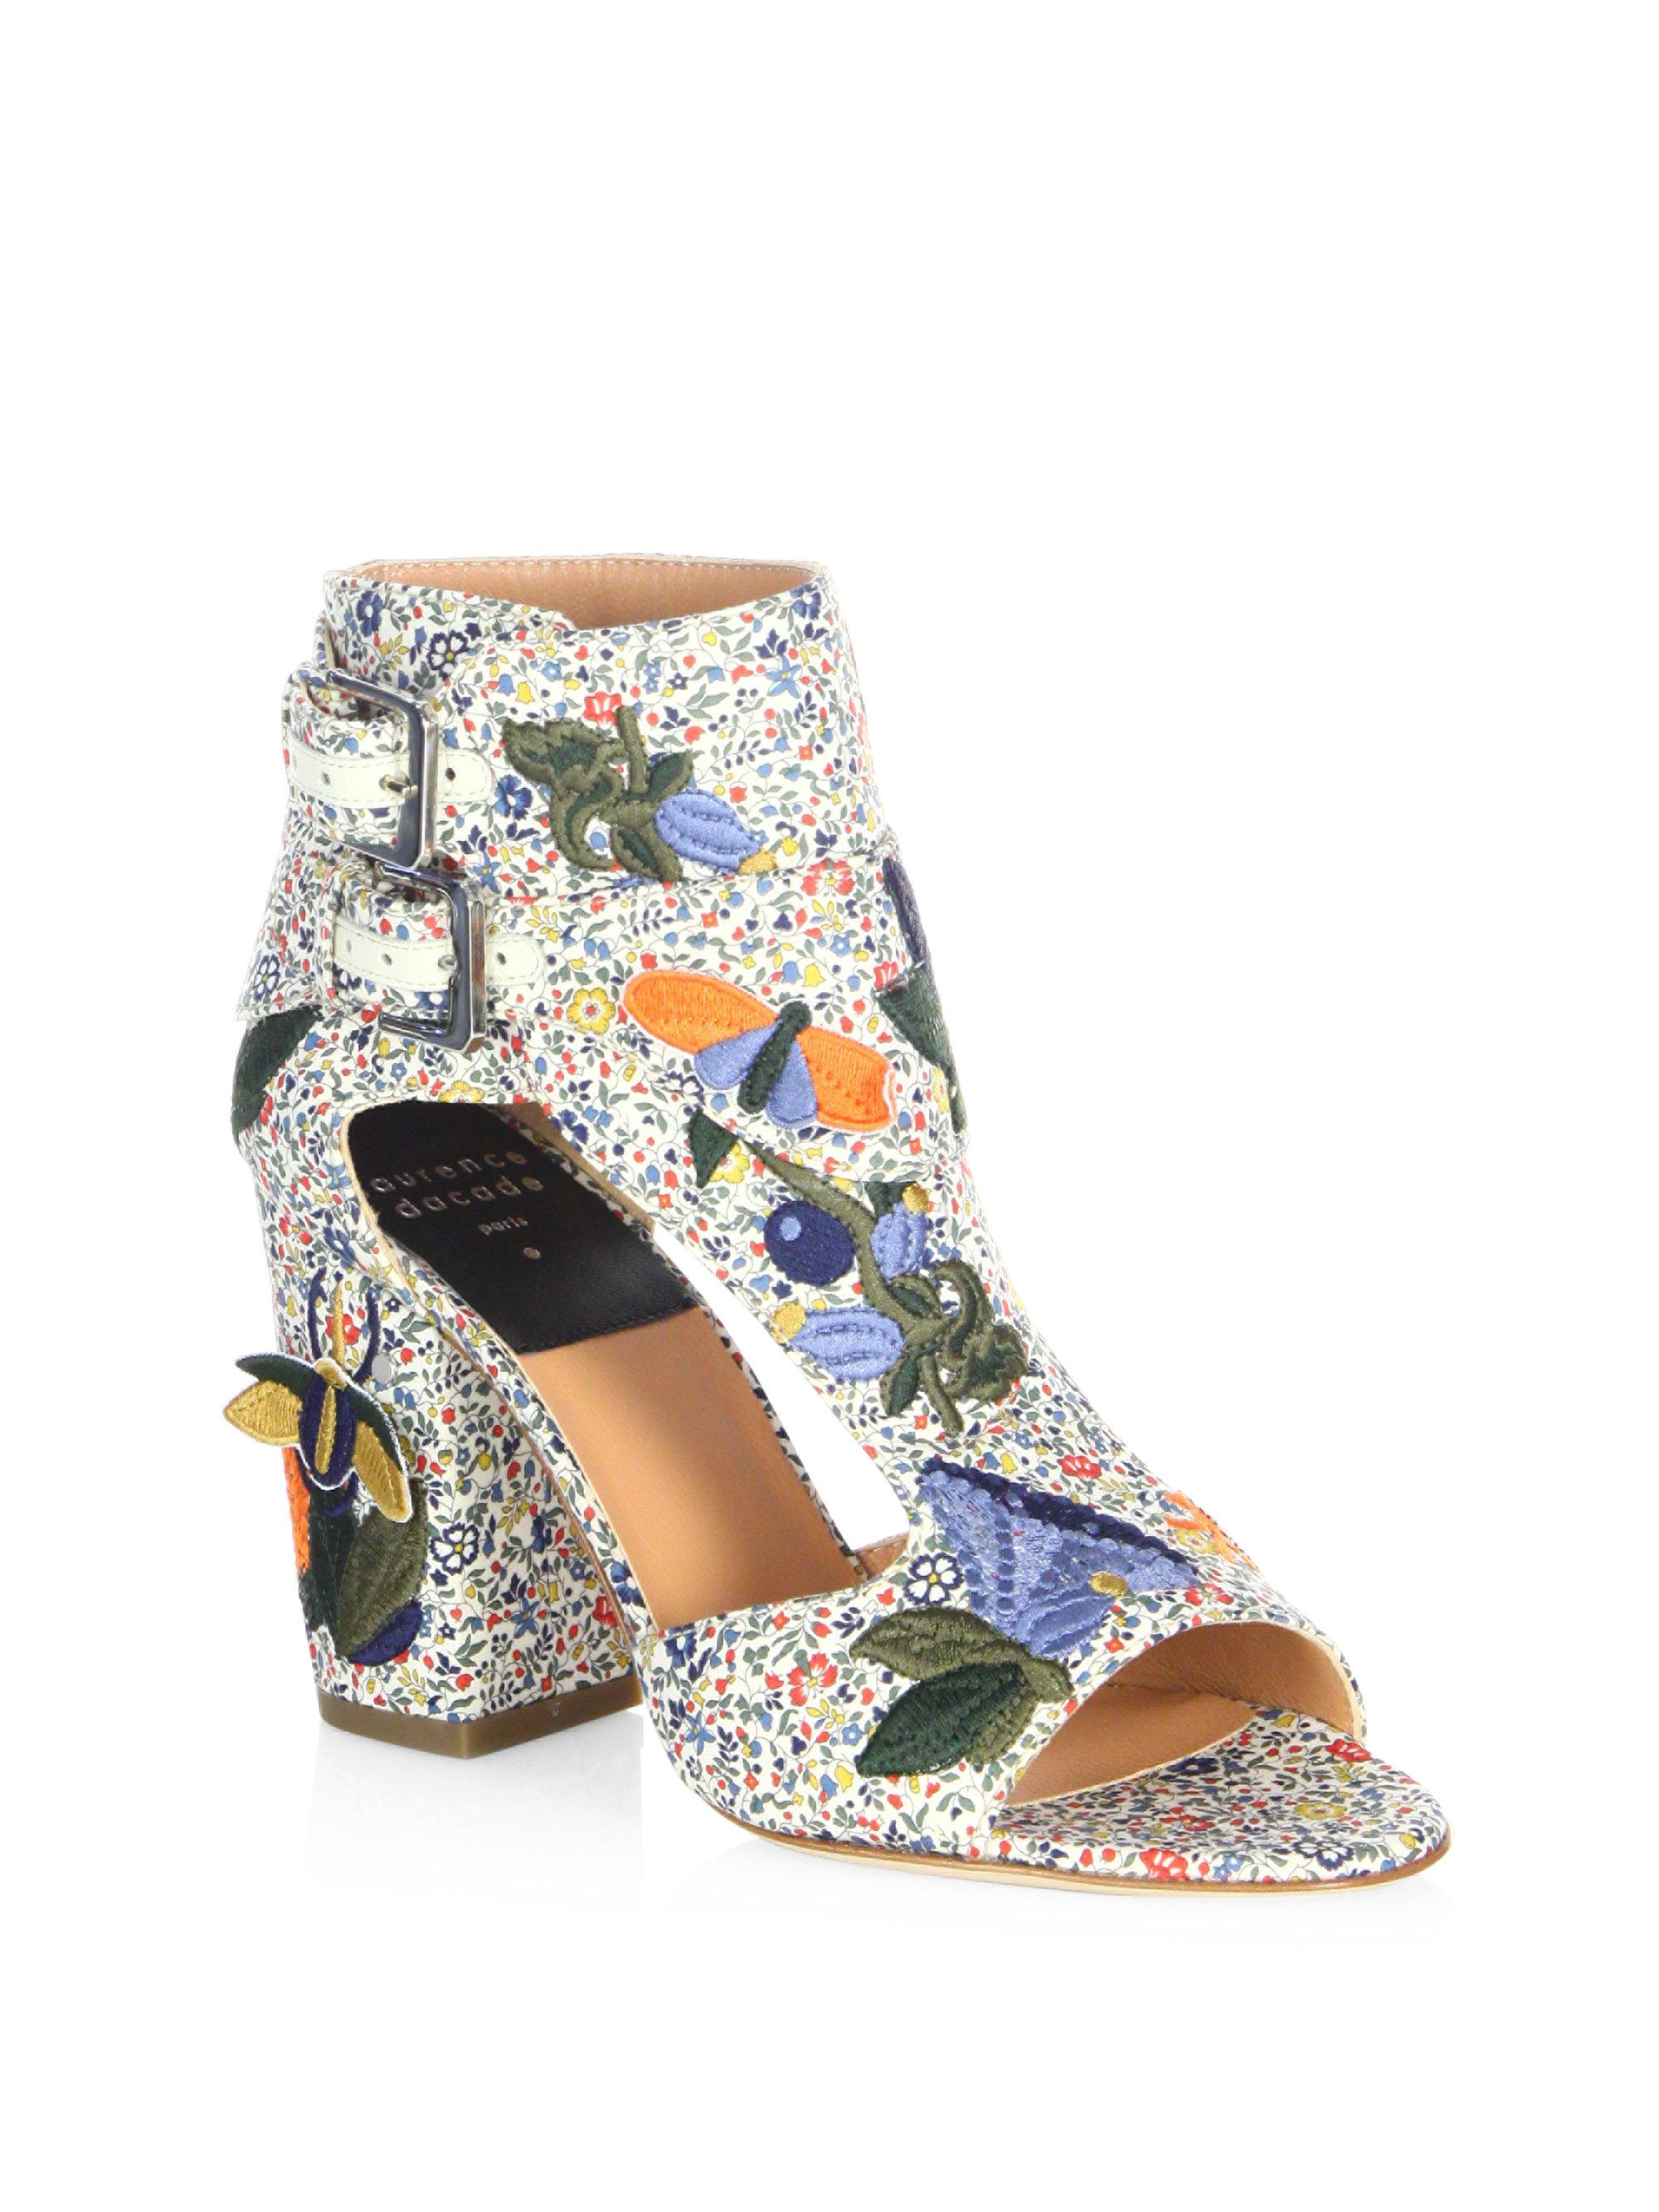 Laurence Dacade Floral-Embroidered Velvet Sandals w/ Tags brand new unisex for sale iwojAXa